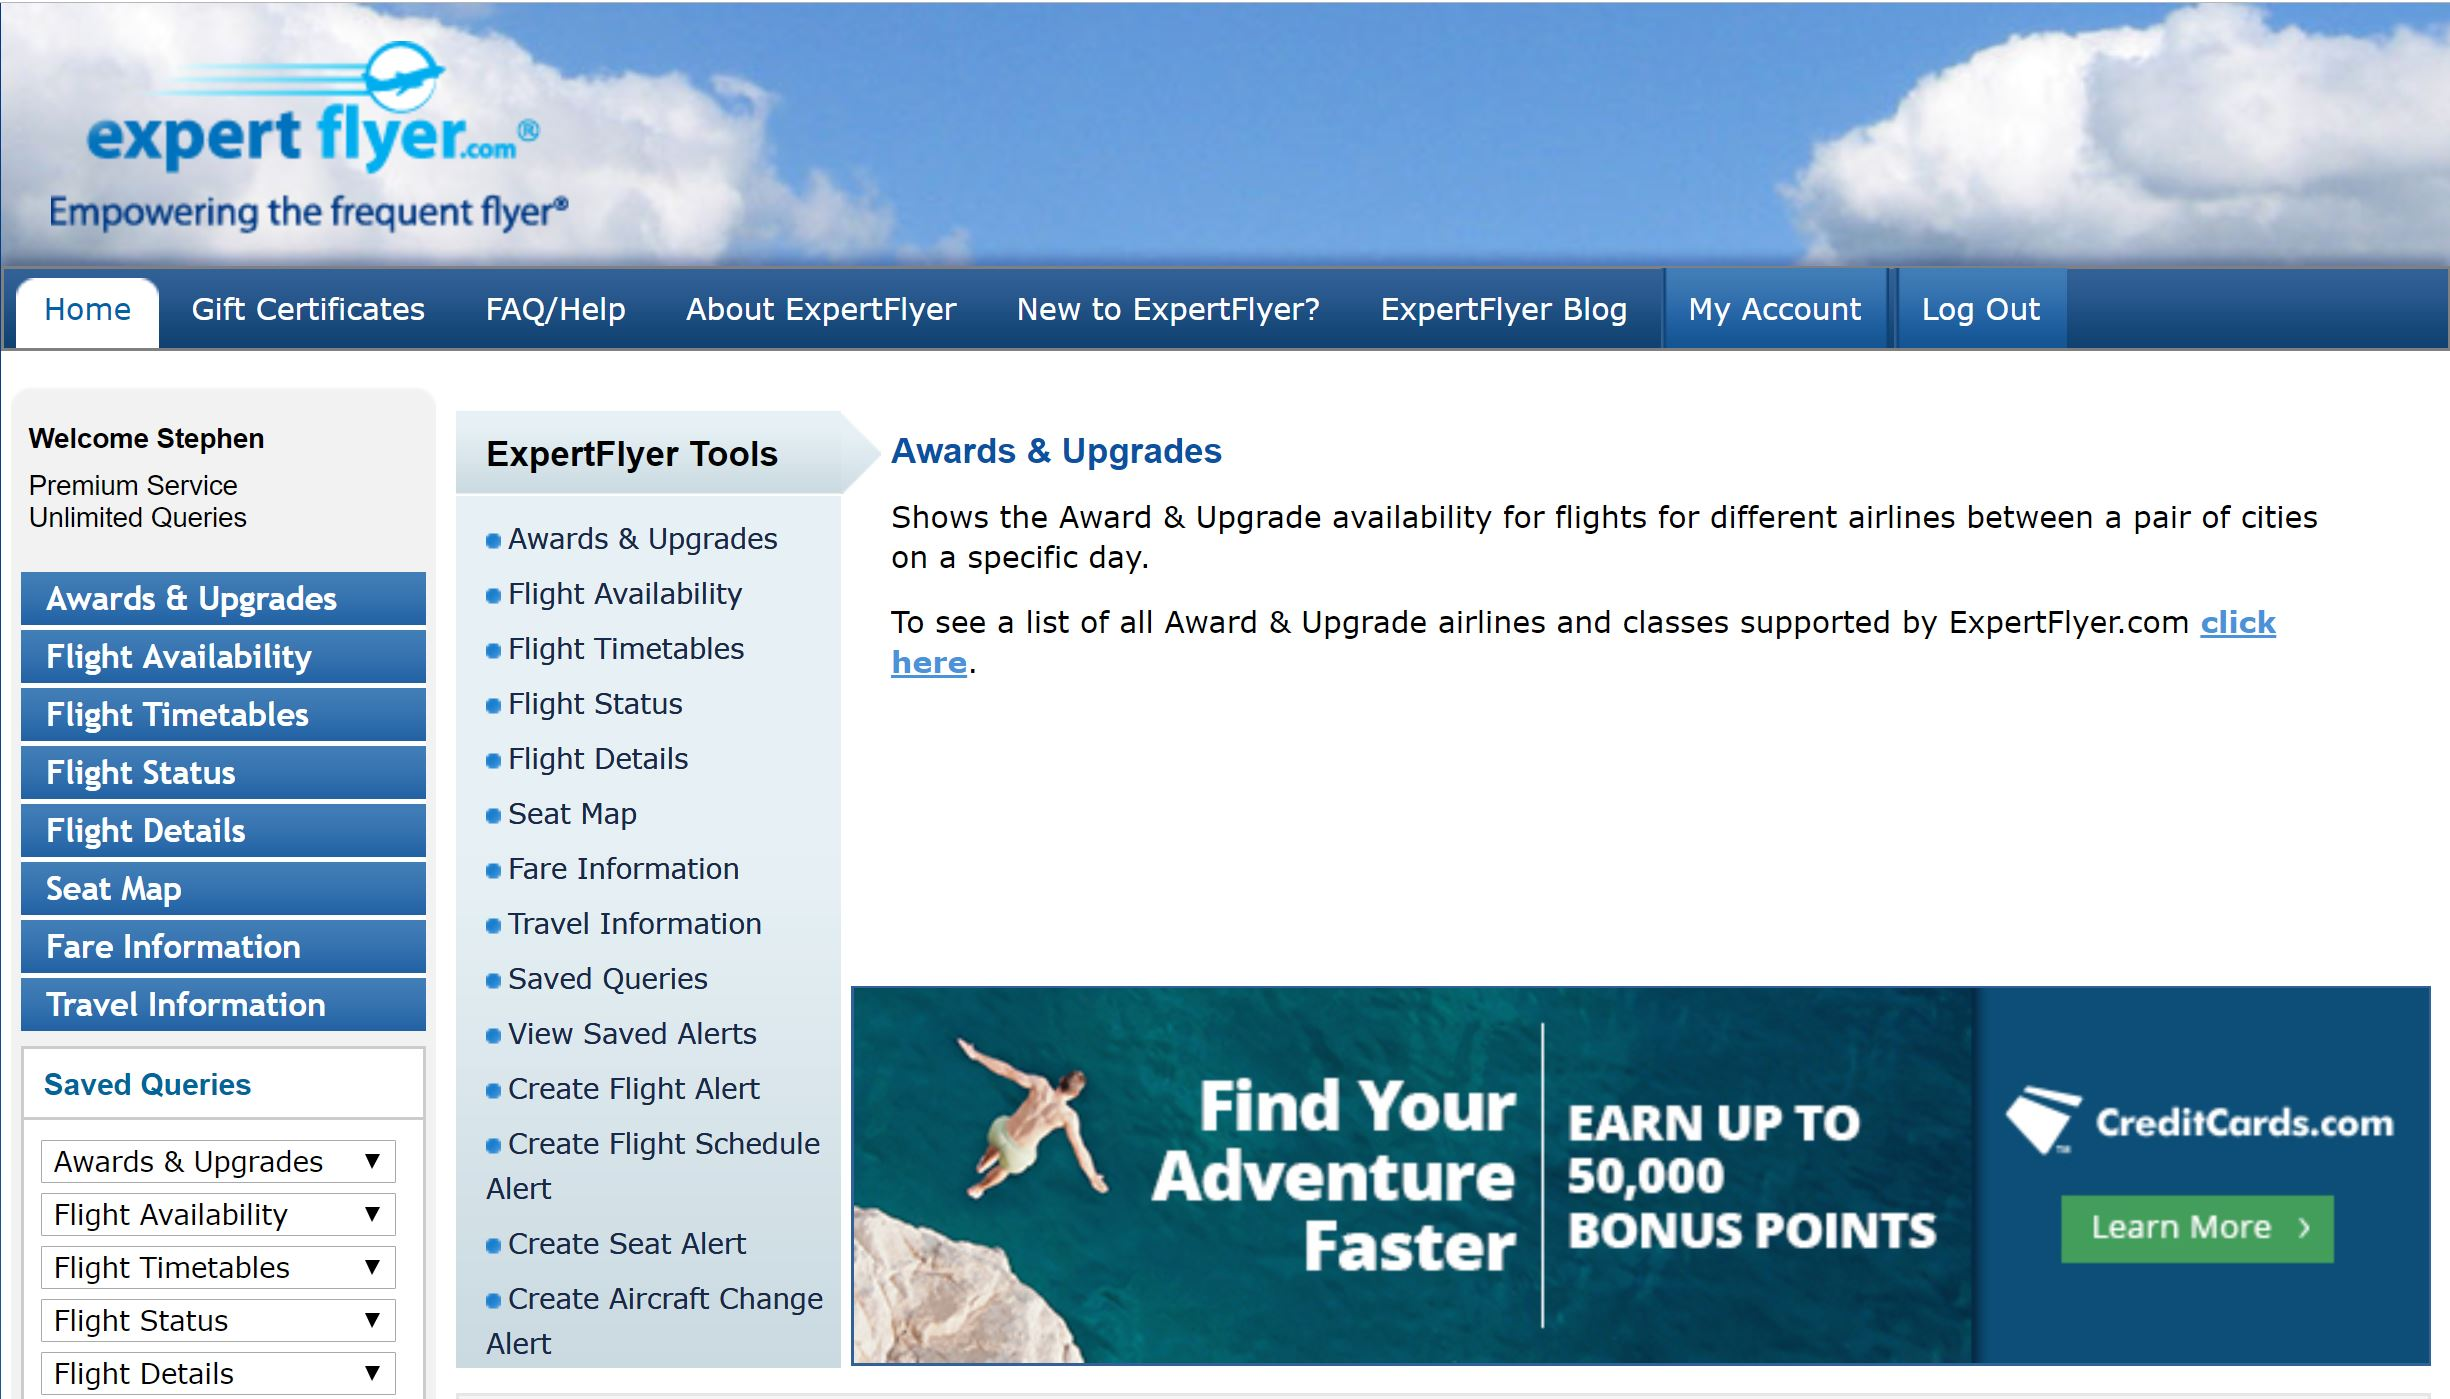 ExpertFlyer - How To Search for Award Space & Upgrades [2019]